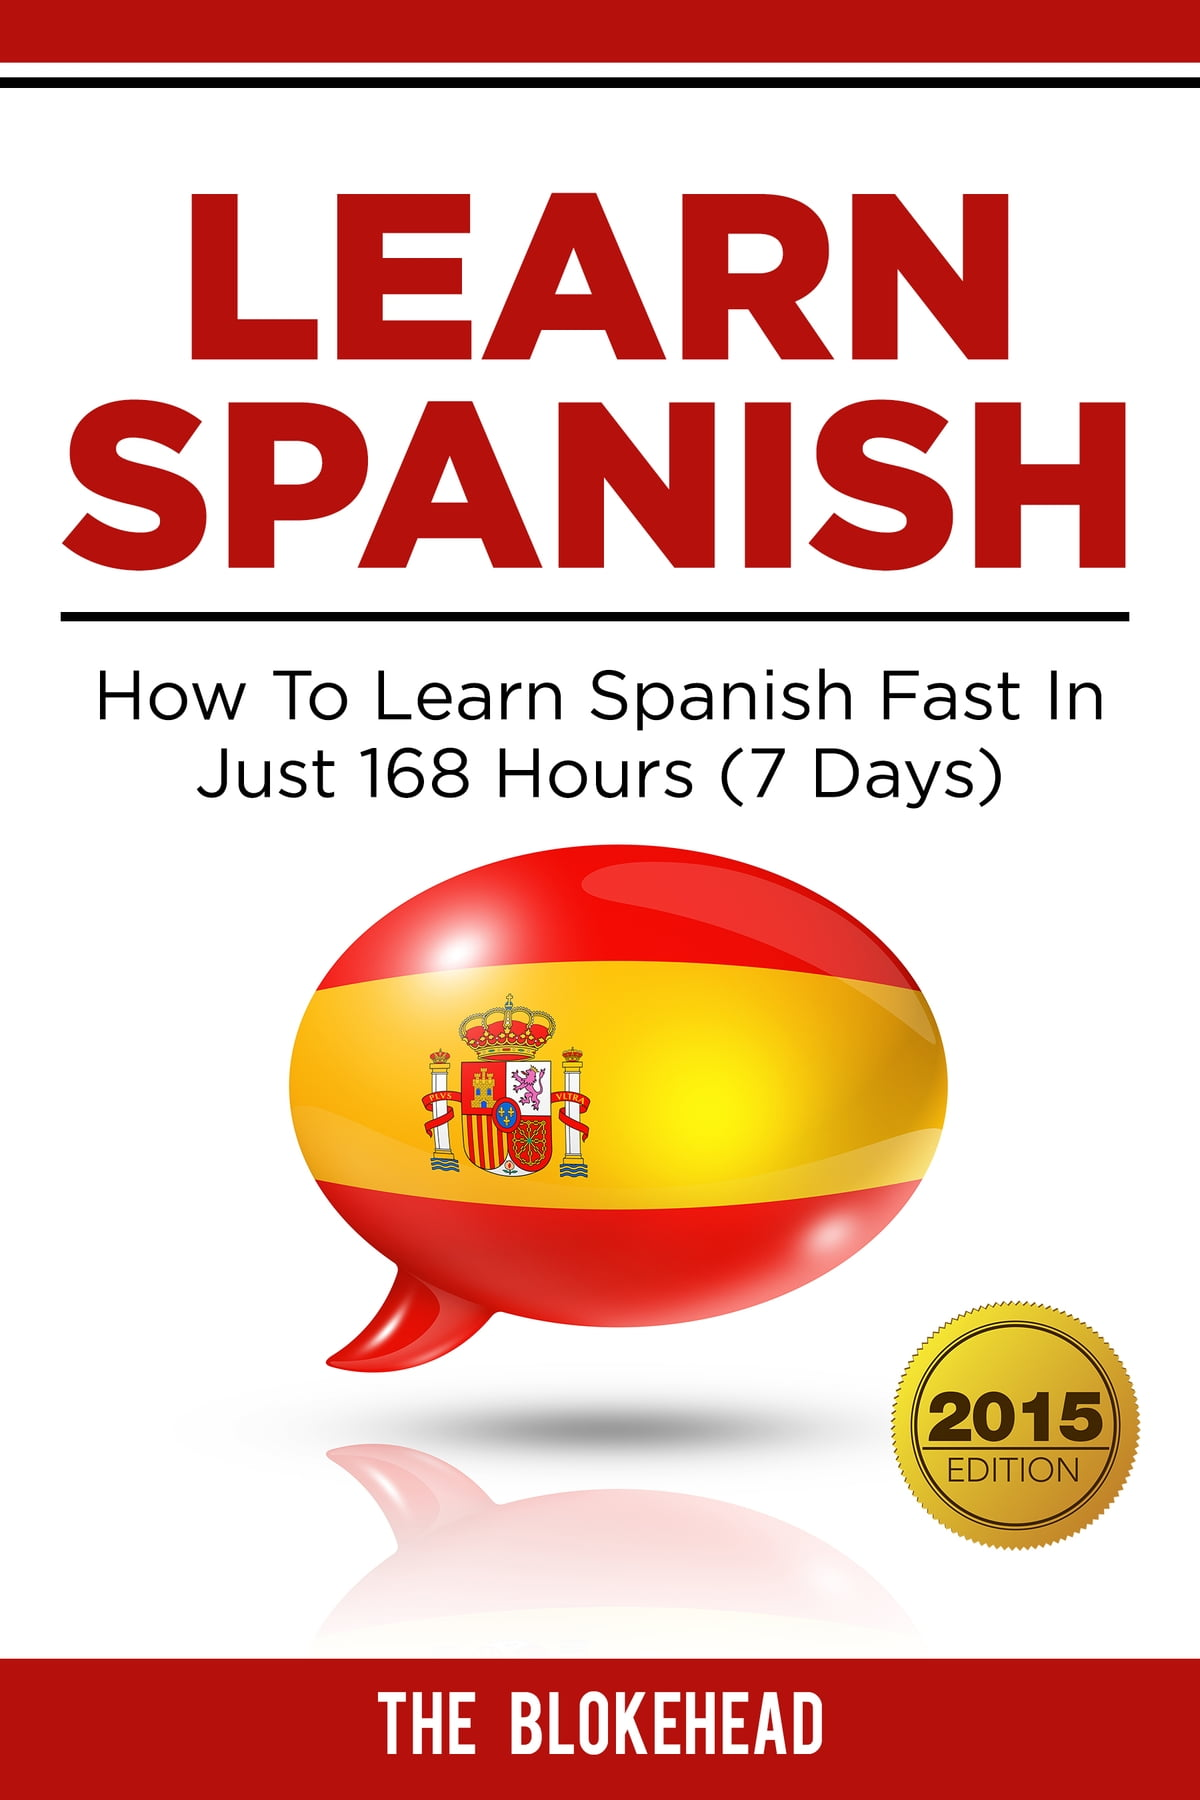 Learn Spanish : How To Learn Spanish Fast In Just 168 Hours (7 Days) Ebook  By The Blokehead  1230000480079  Kobo